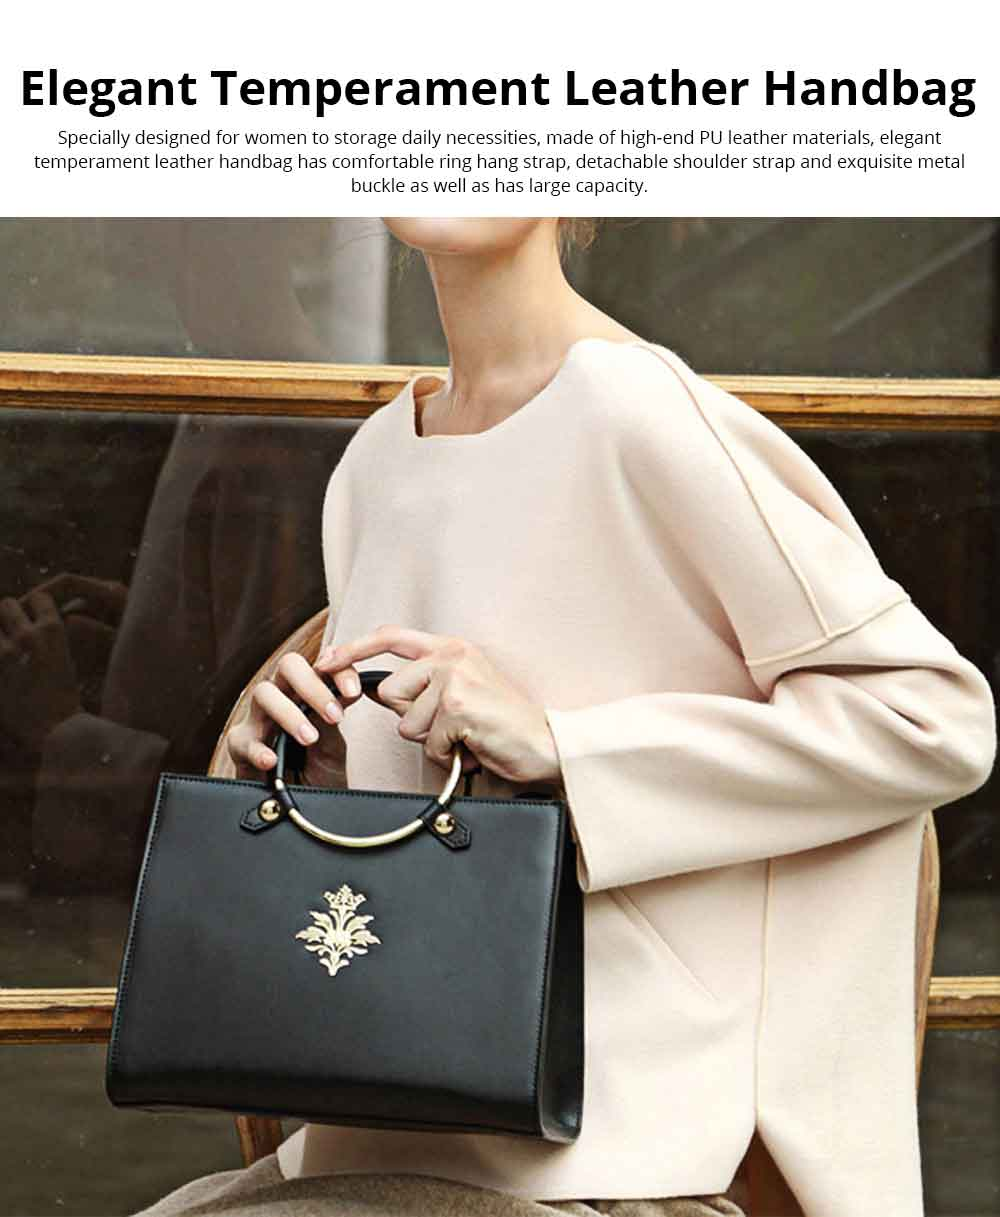 Leather Handbag With Comfortable Ring Hand Strap, Elegant Temperament Simple Shoulder Bag for Women 0